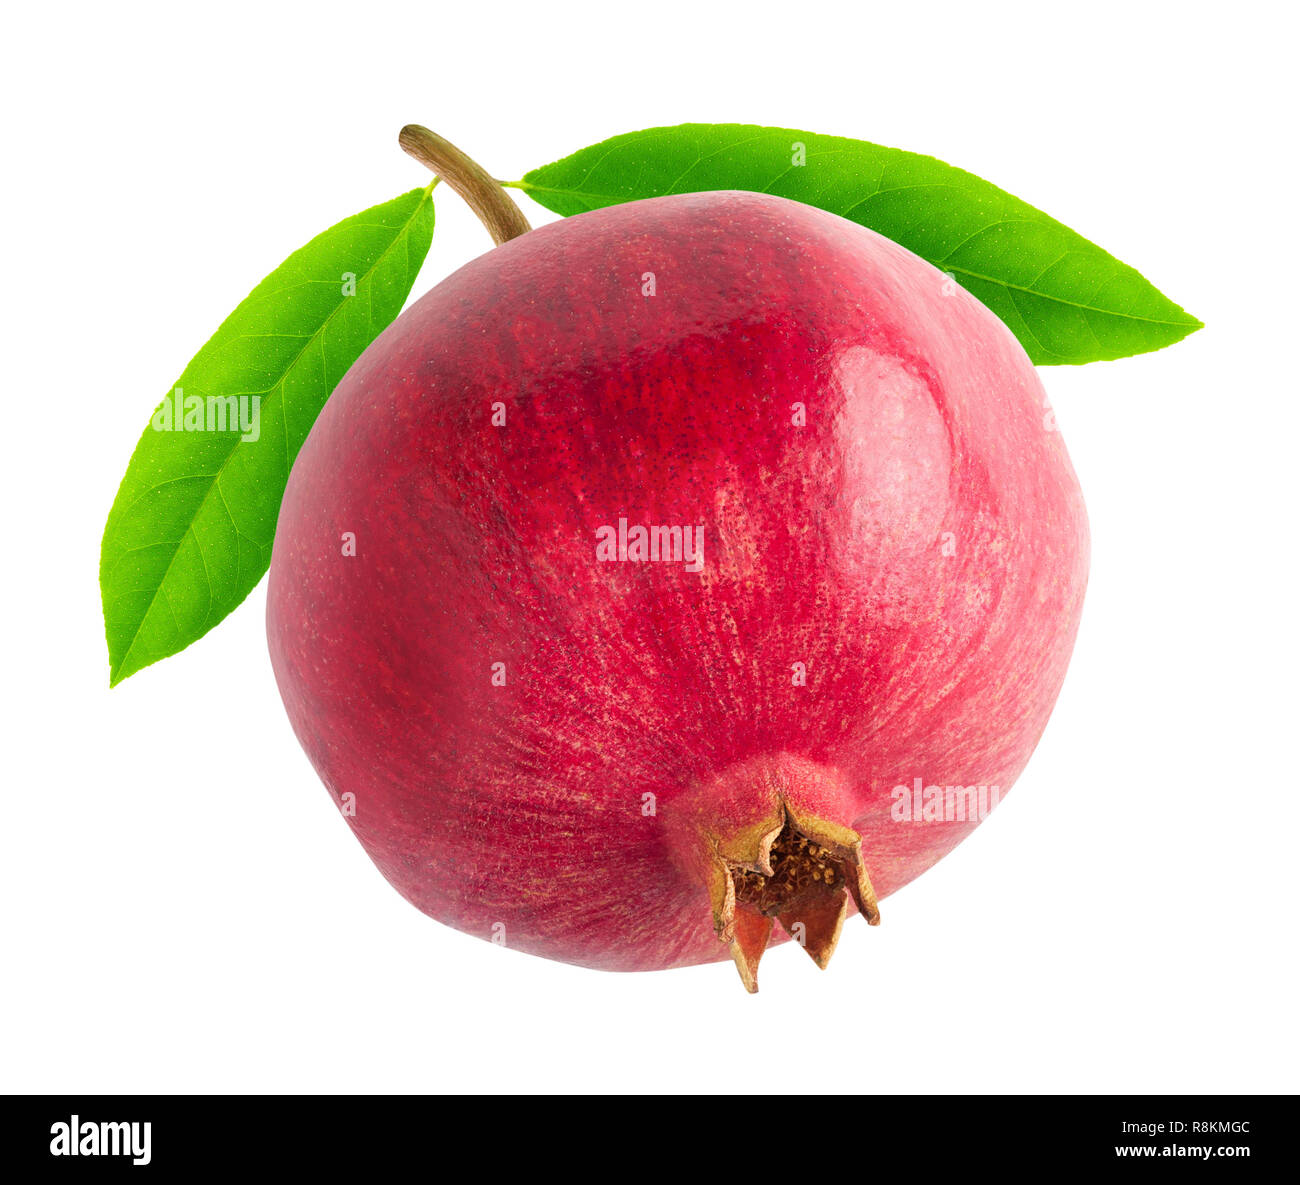 Isolated pomegranate. One pomegranate fruit on a branch with leaves isolated on white background with clipping path - Stock Image